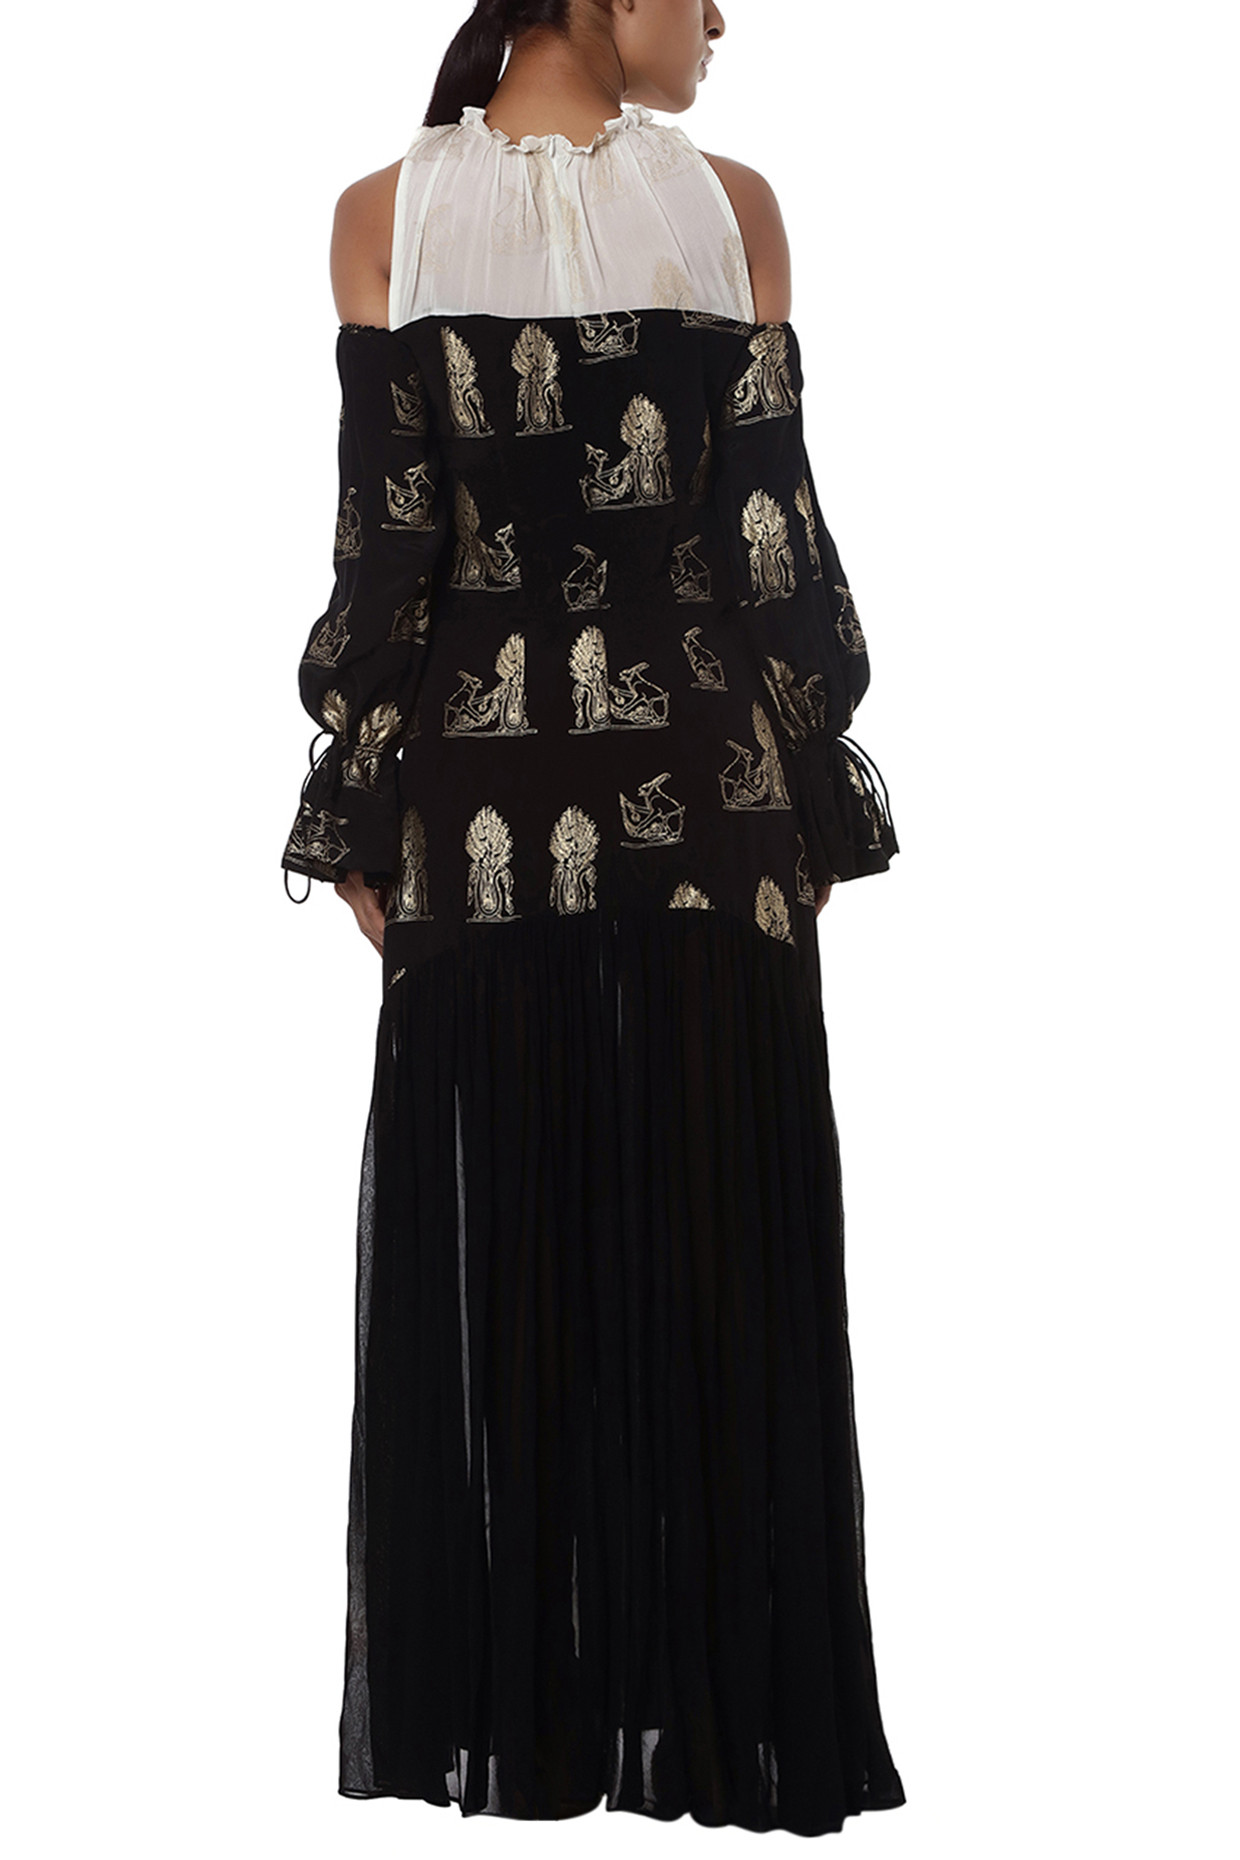 Black and white printed cold shoulder gown by Masaba